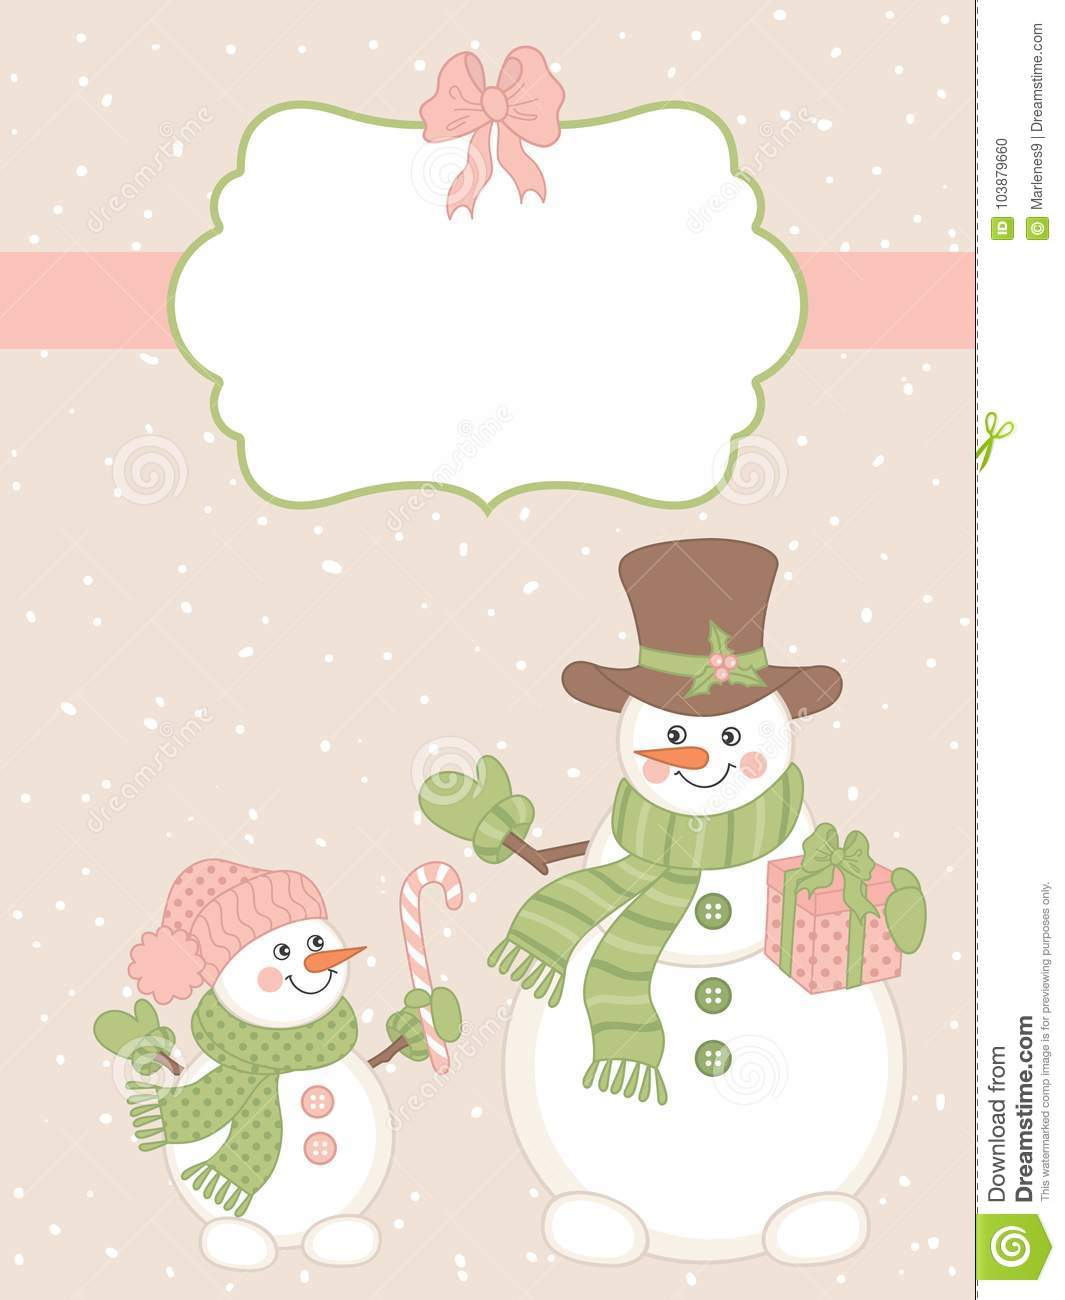 vector christmas and new year card template with cute snowmen and winter elements